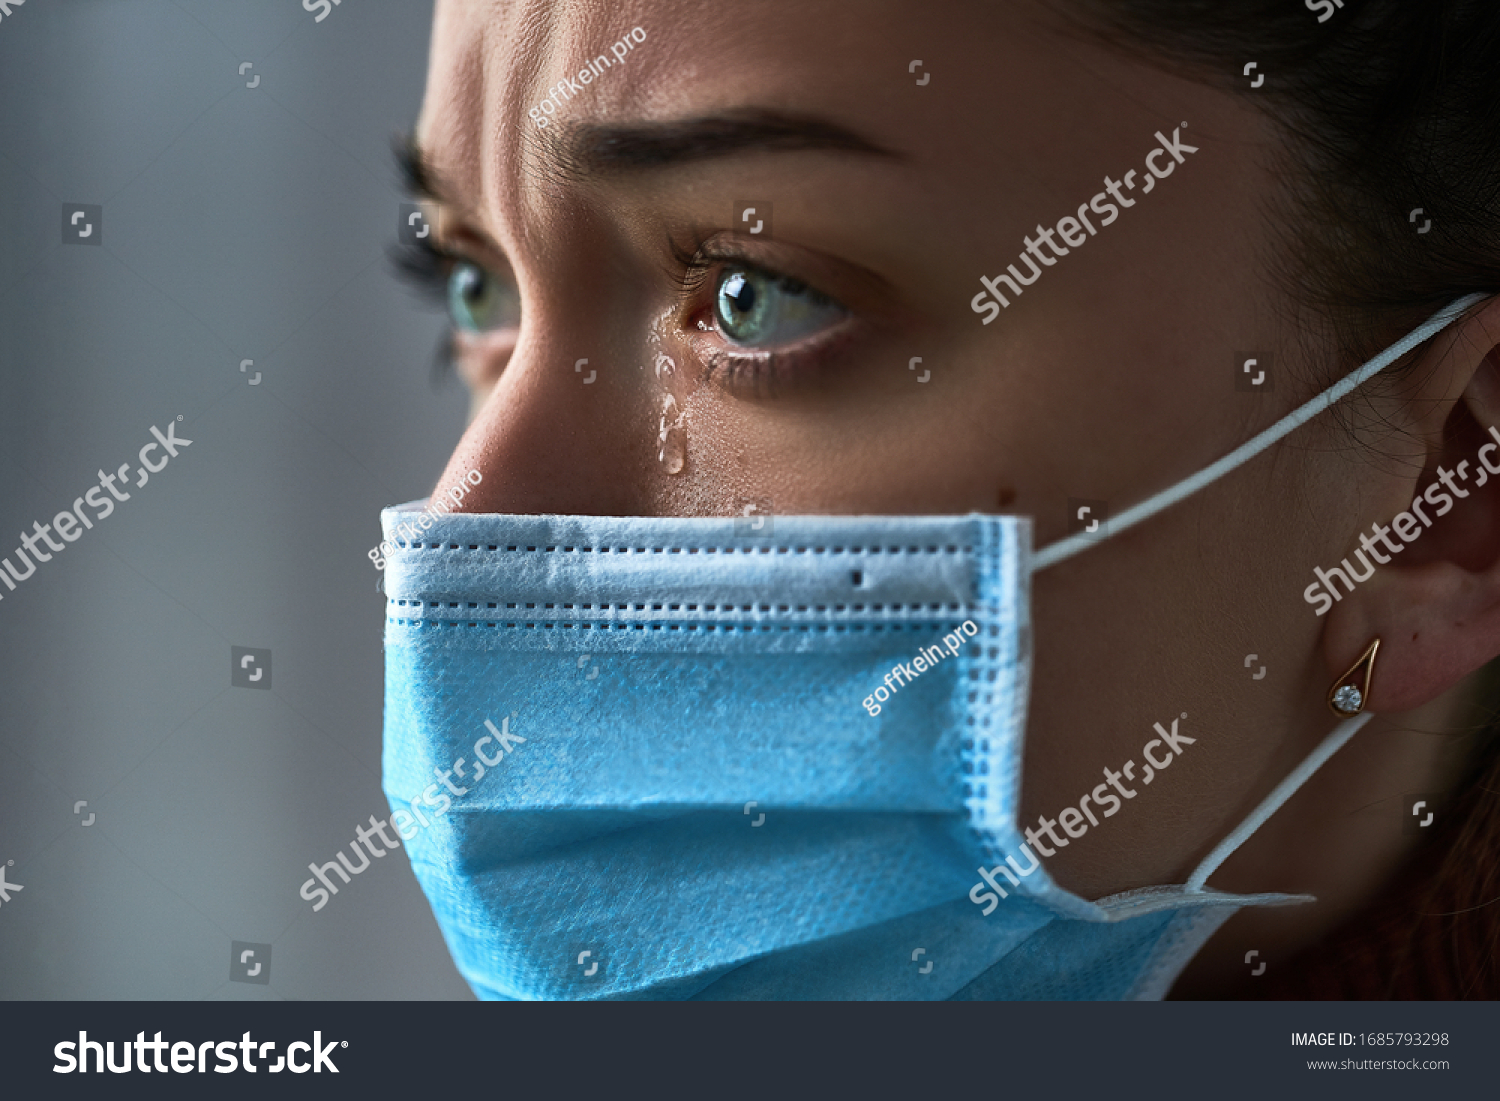 Upset depressed melancholy sad crying woman in protective face mask with tears eyes during serious illness, coronavirus outbreak and flu covid-19 epidemic. Health problems difficulties #1685793298